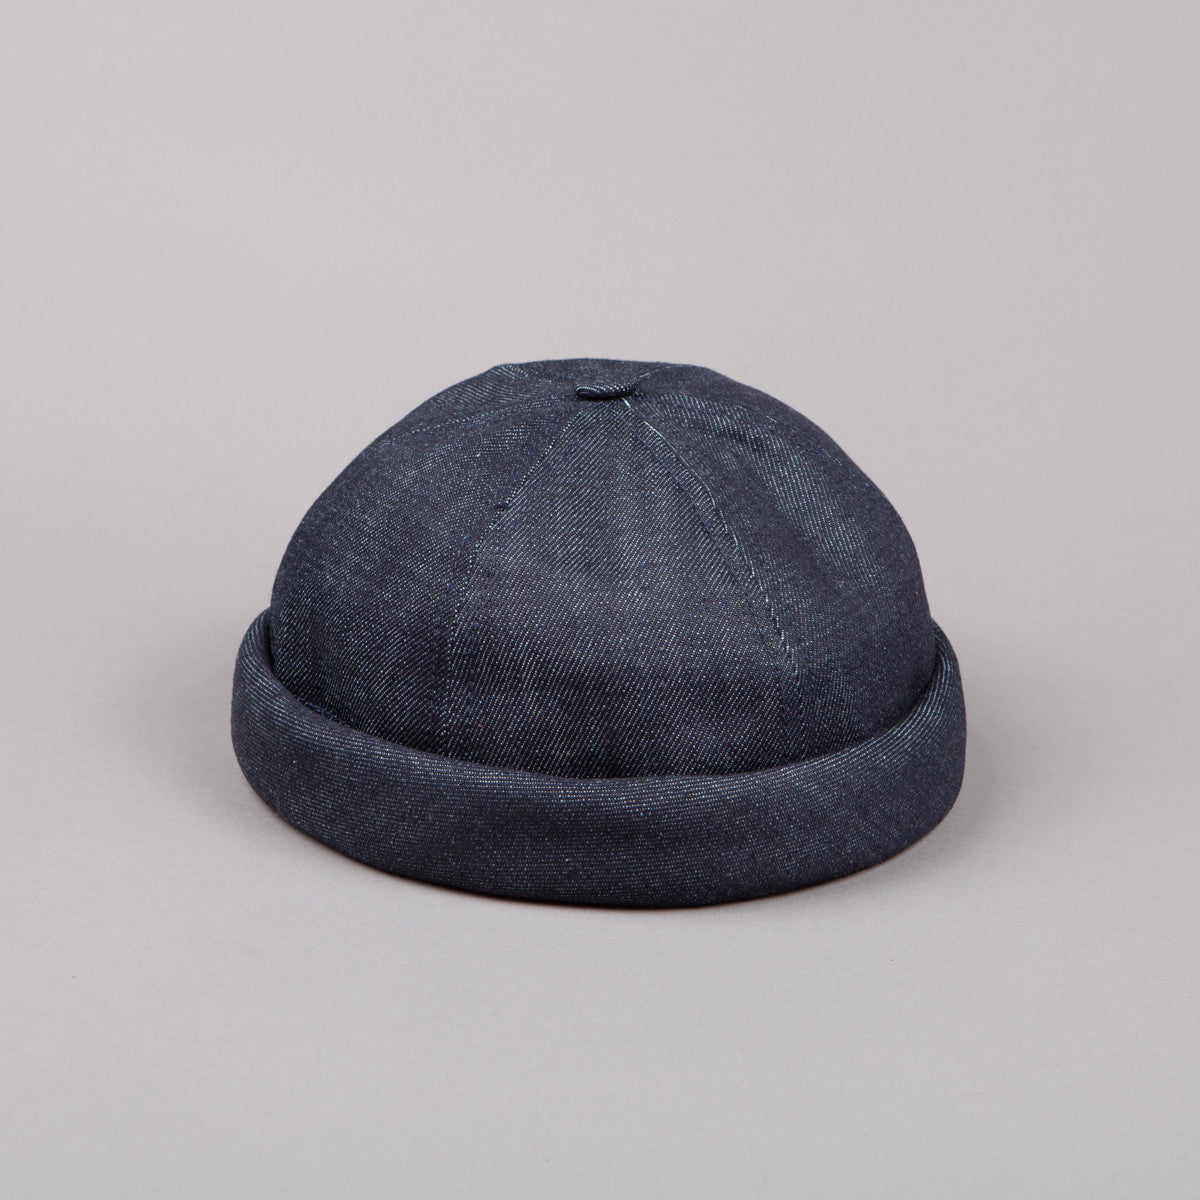 4926ab11523fa4 Beton Cire Miki Hat in Denim Brut — Our Daily Edit